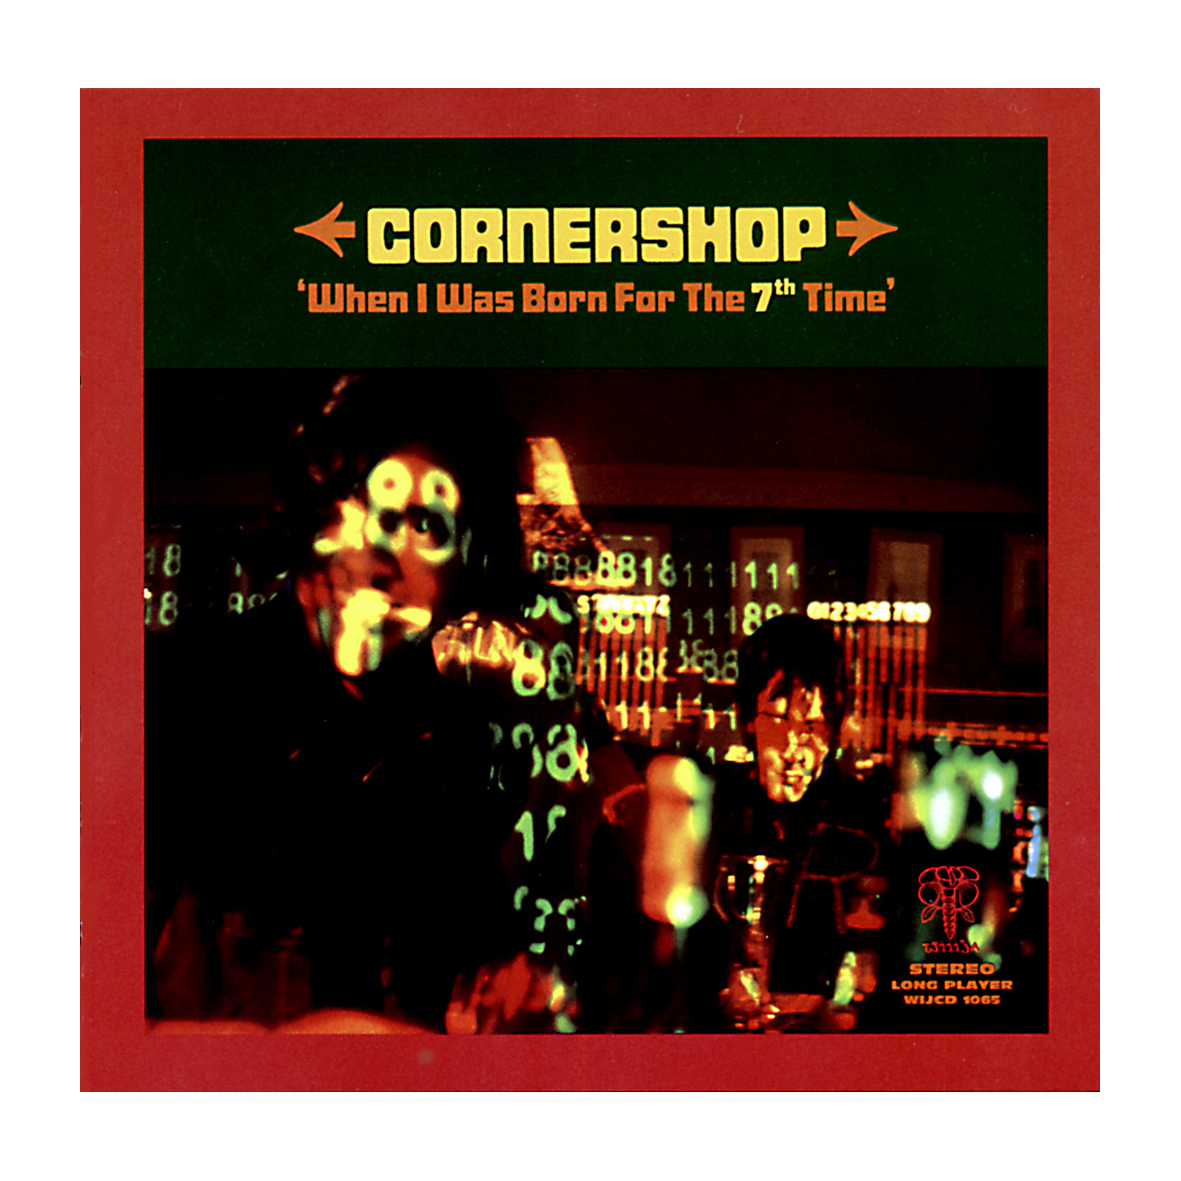 Cornershop Album